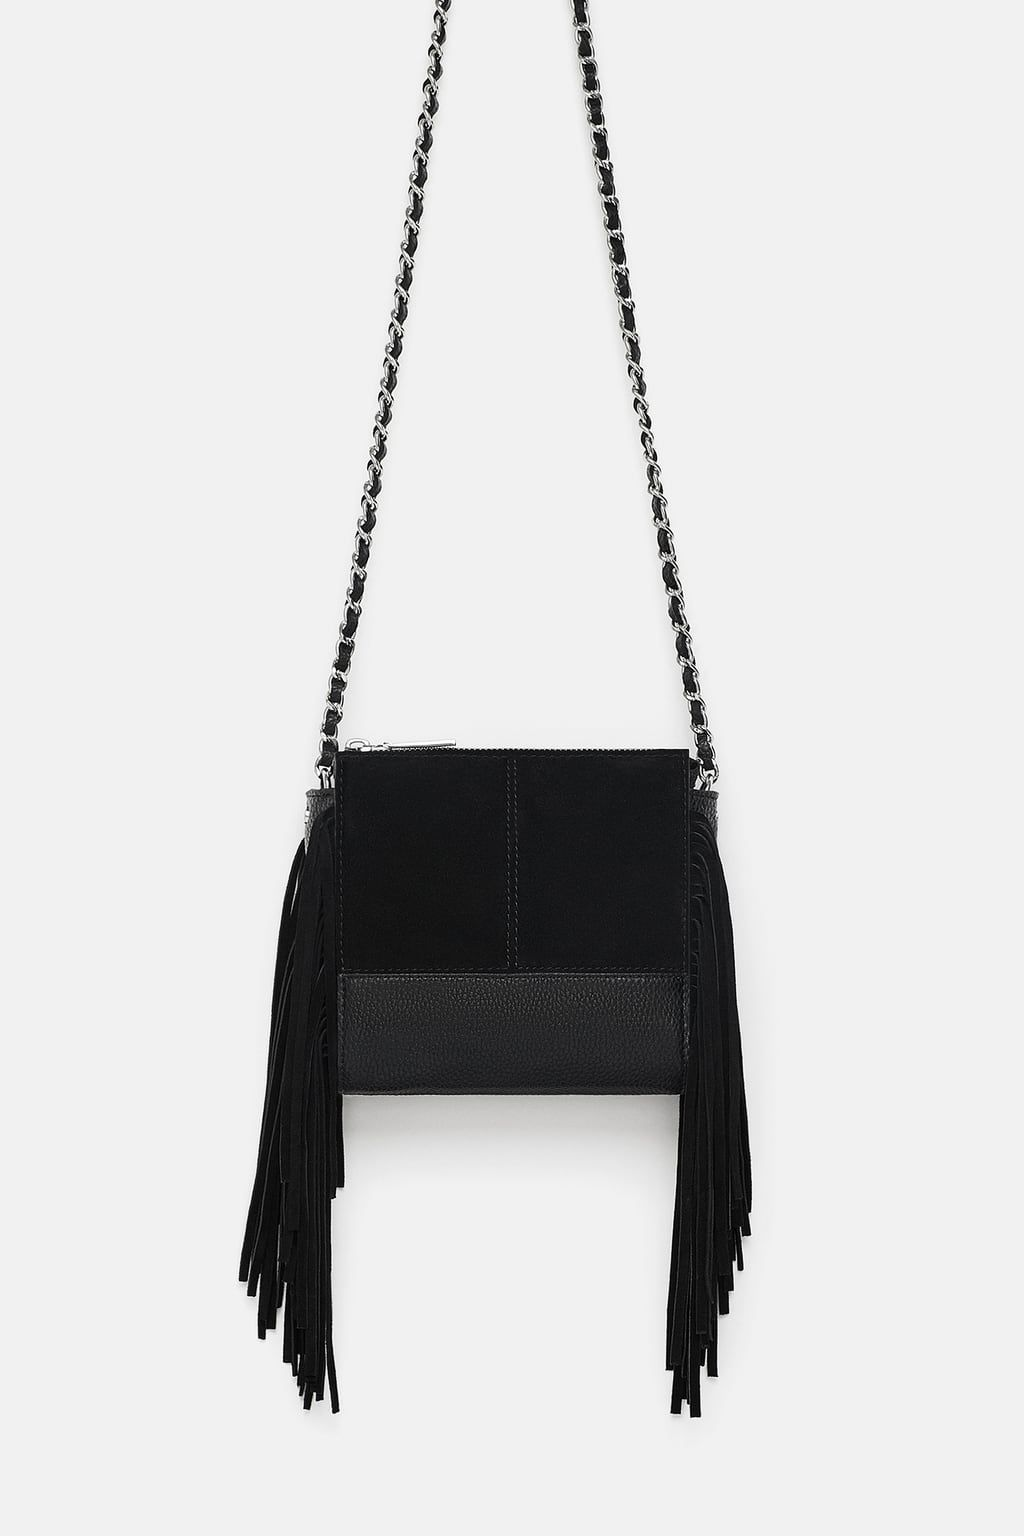 0c81ef702be4 Image 2 of LEATHER CROSSBODY BAG WITH FRINGING from Zara